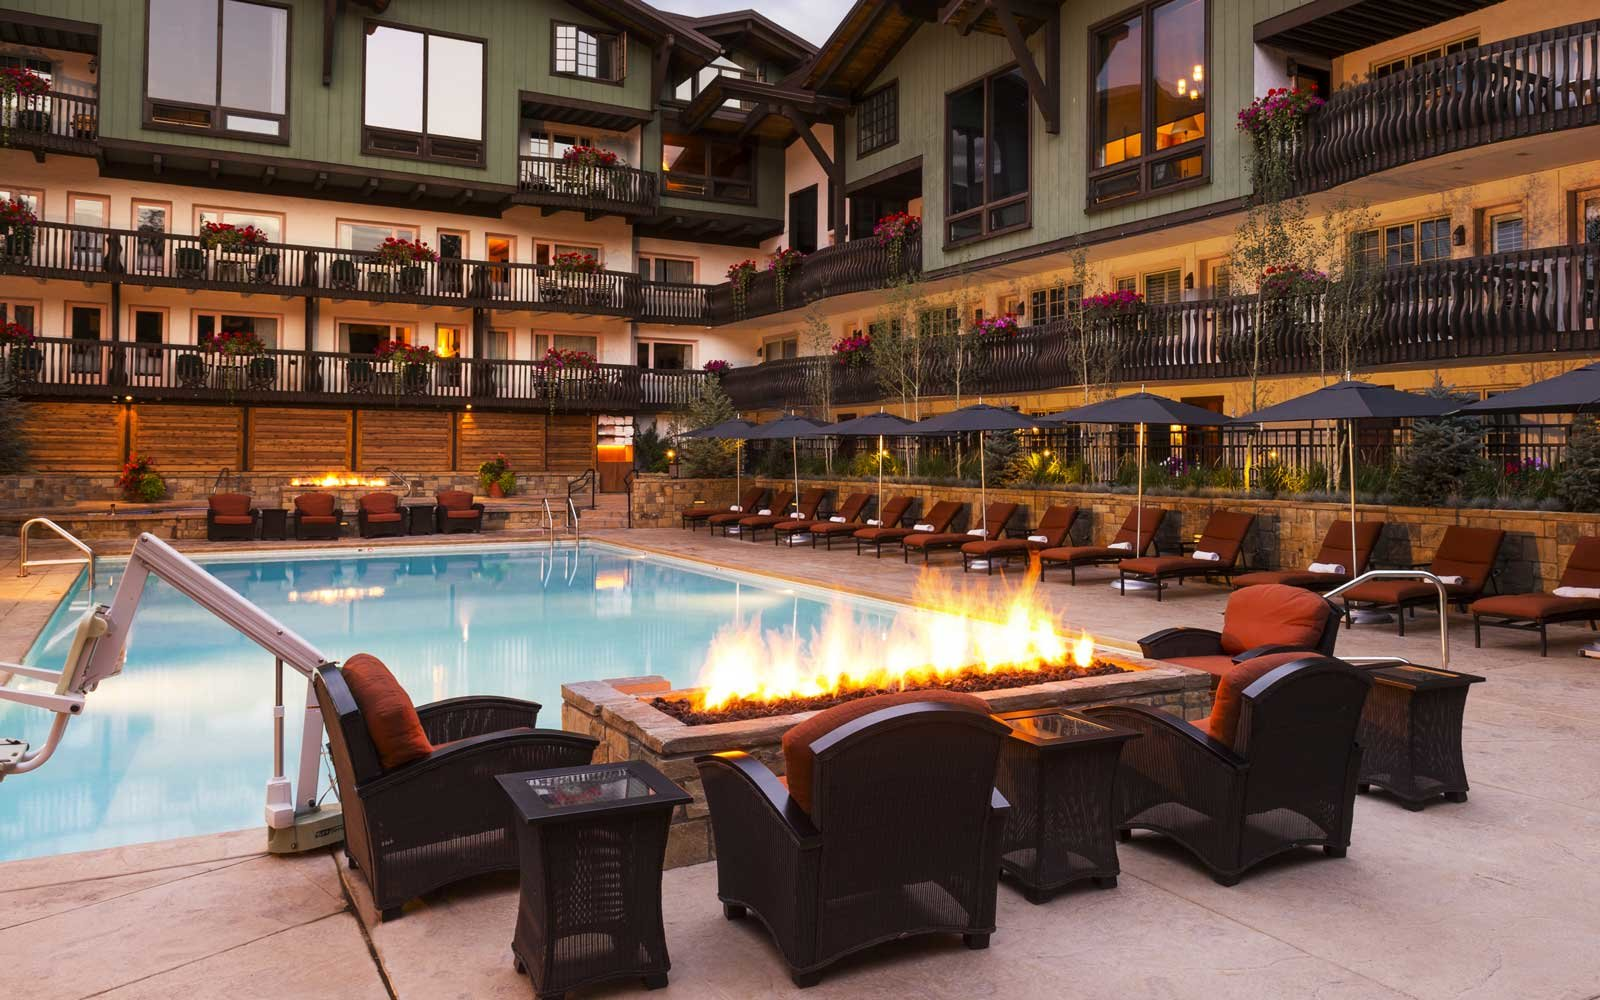 Pool and fire pit at the Lodge at Vail